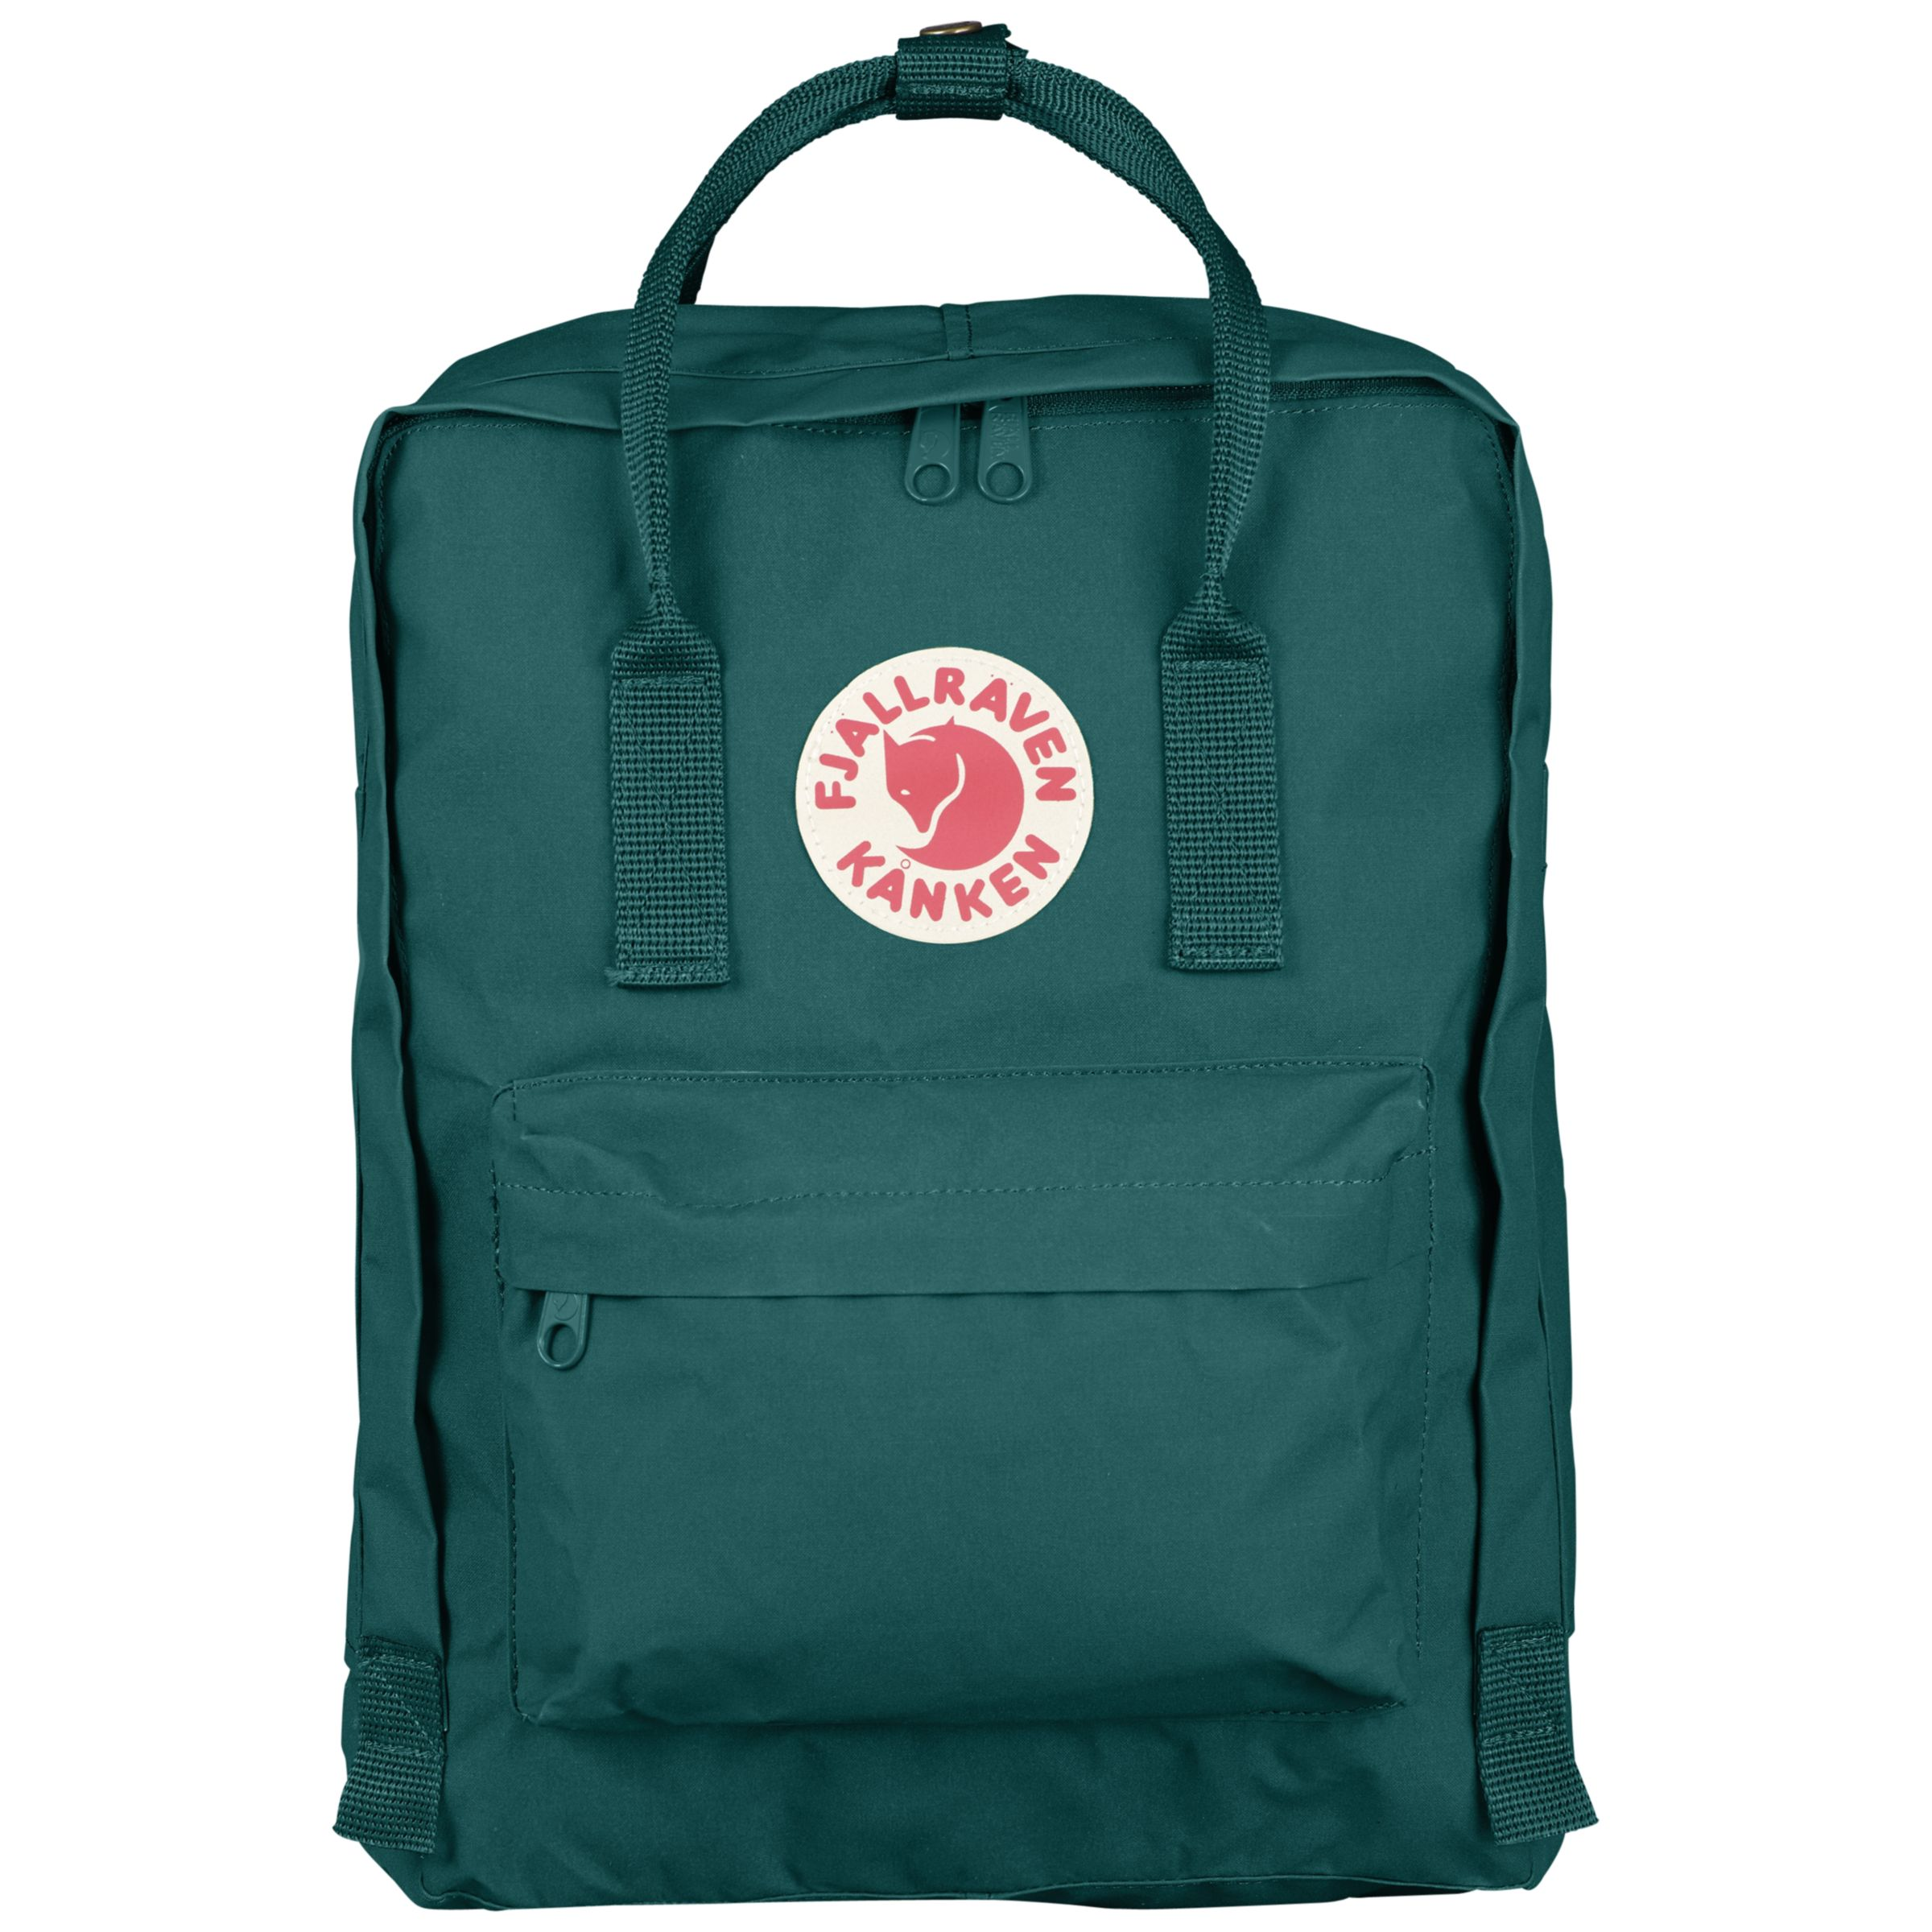 new appearance outlet cheap sale Fjällräven Kanken Classic Backpack at John Lewis & Partners